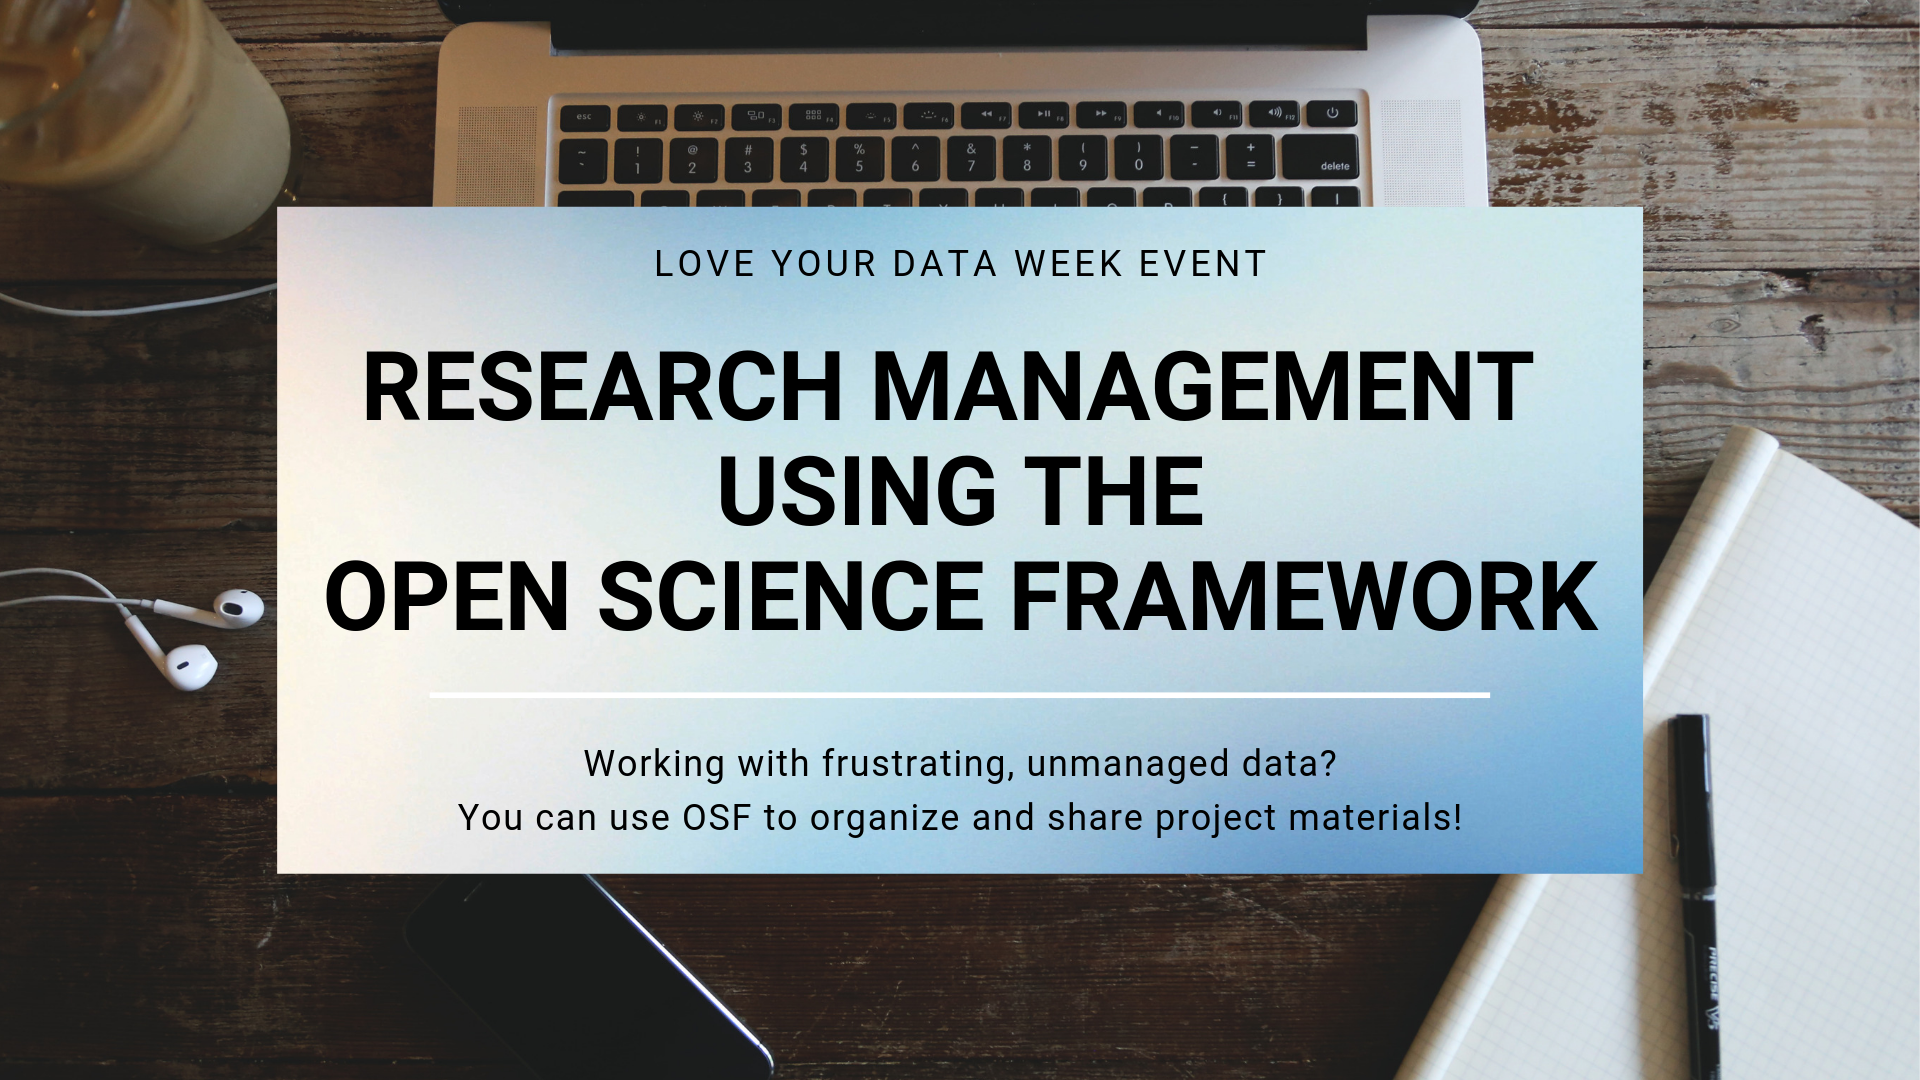 Research Management Using the Open Science Framework